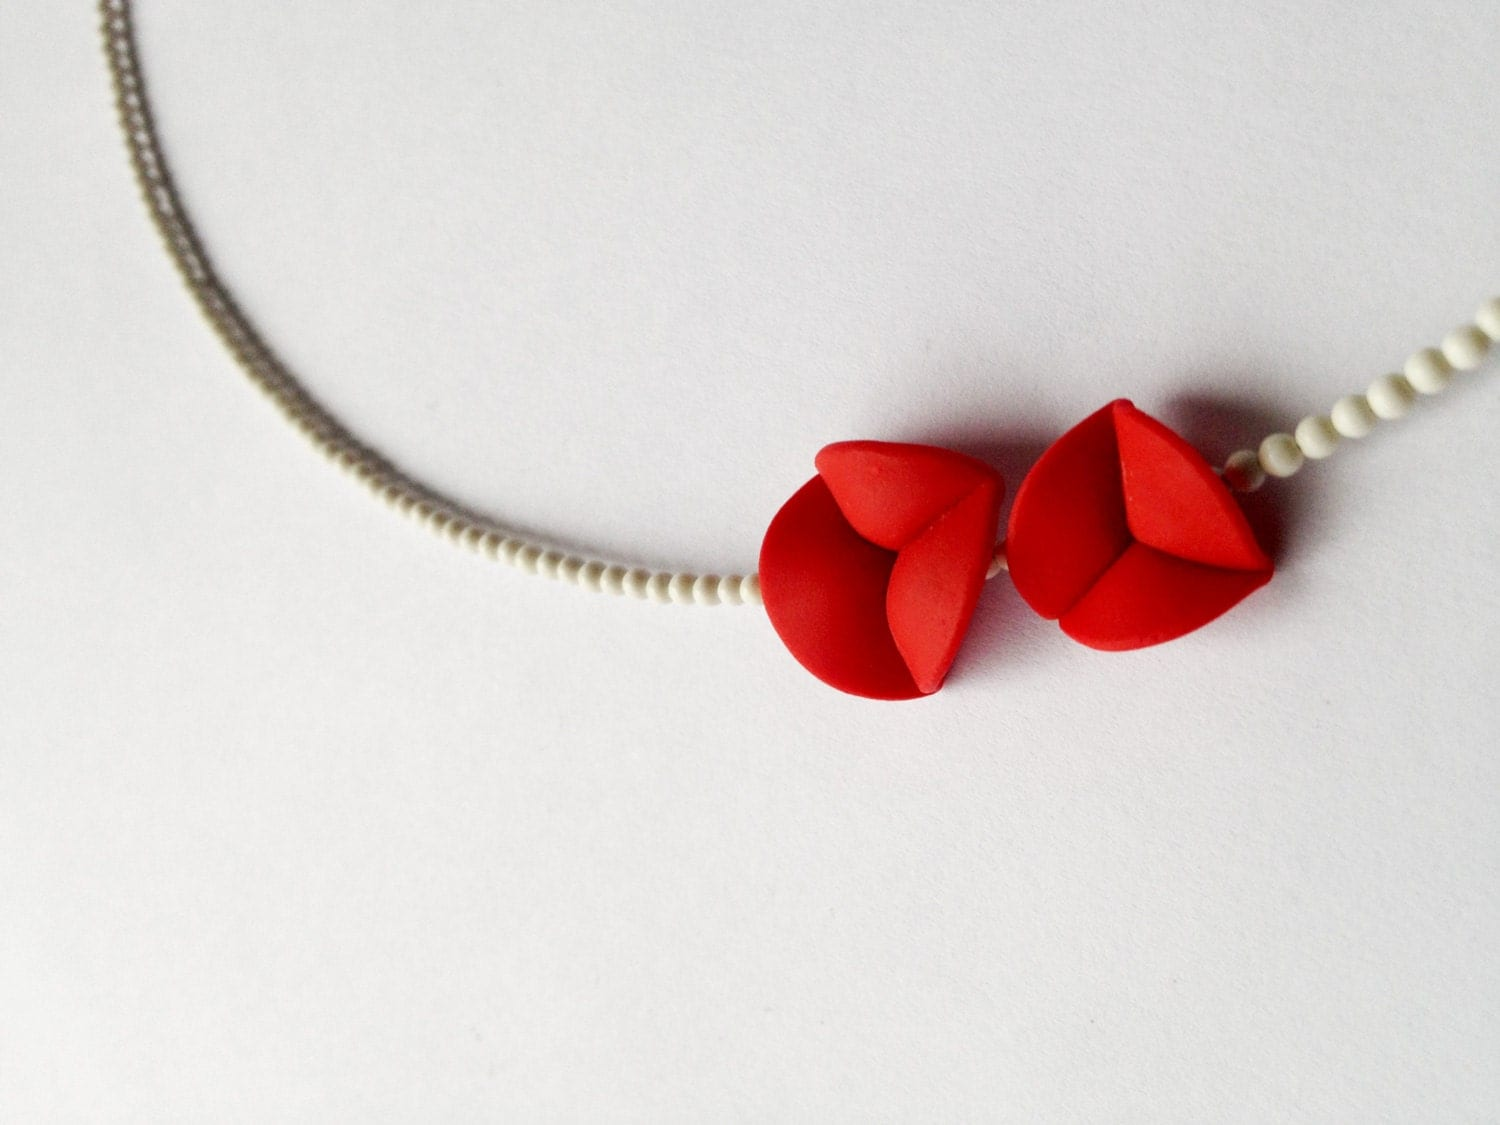 minimal chic necklace 'nO 27 red flower petals between white corals''